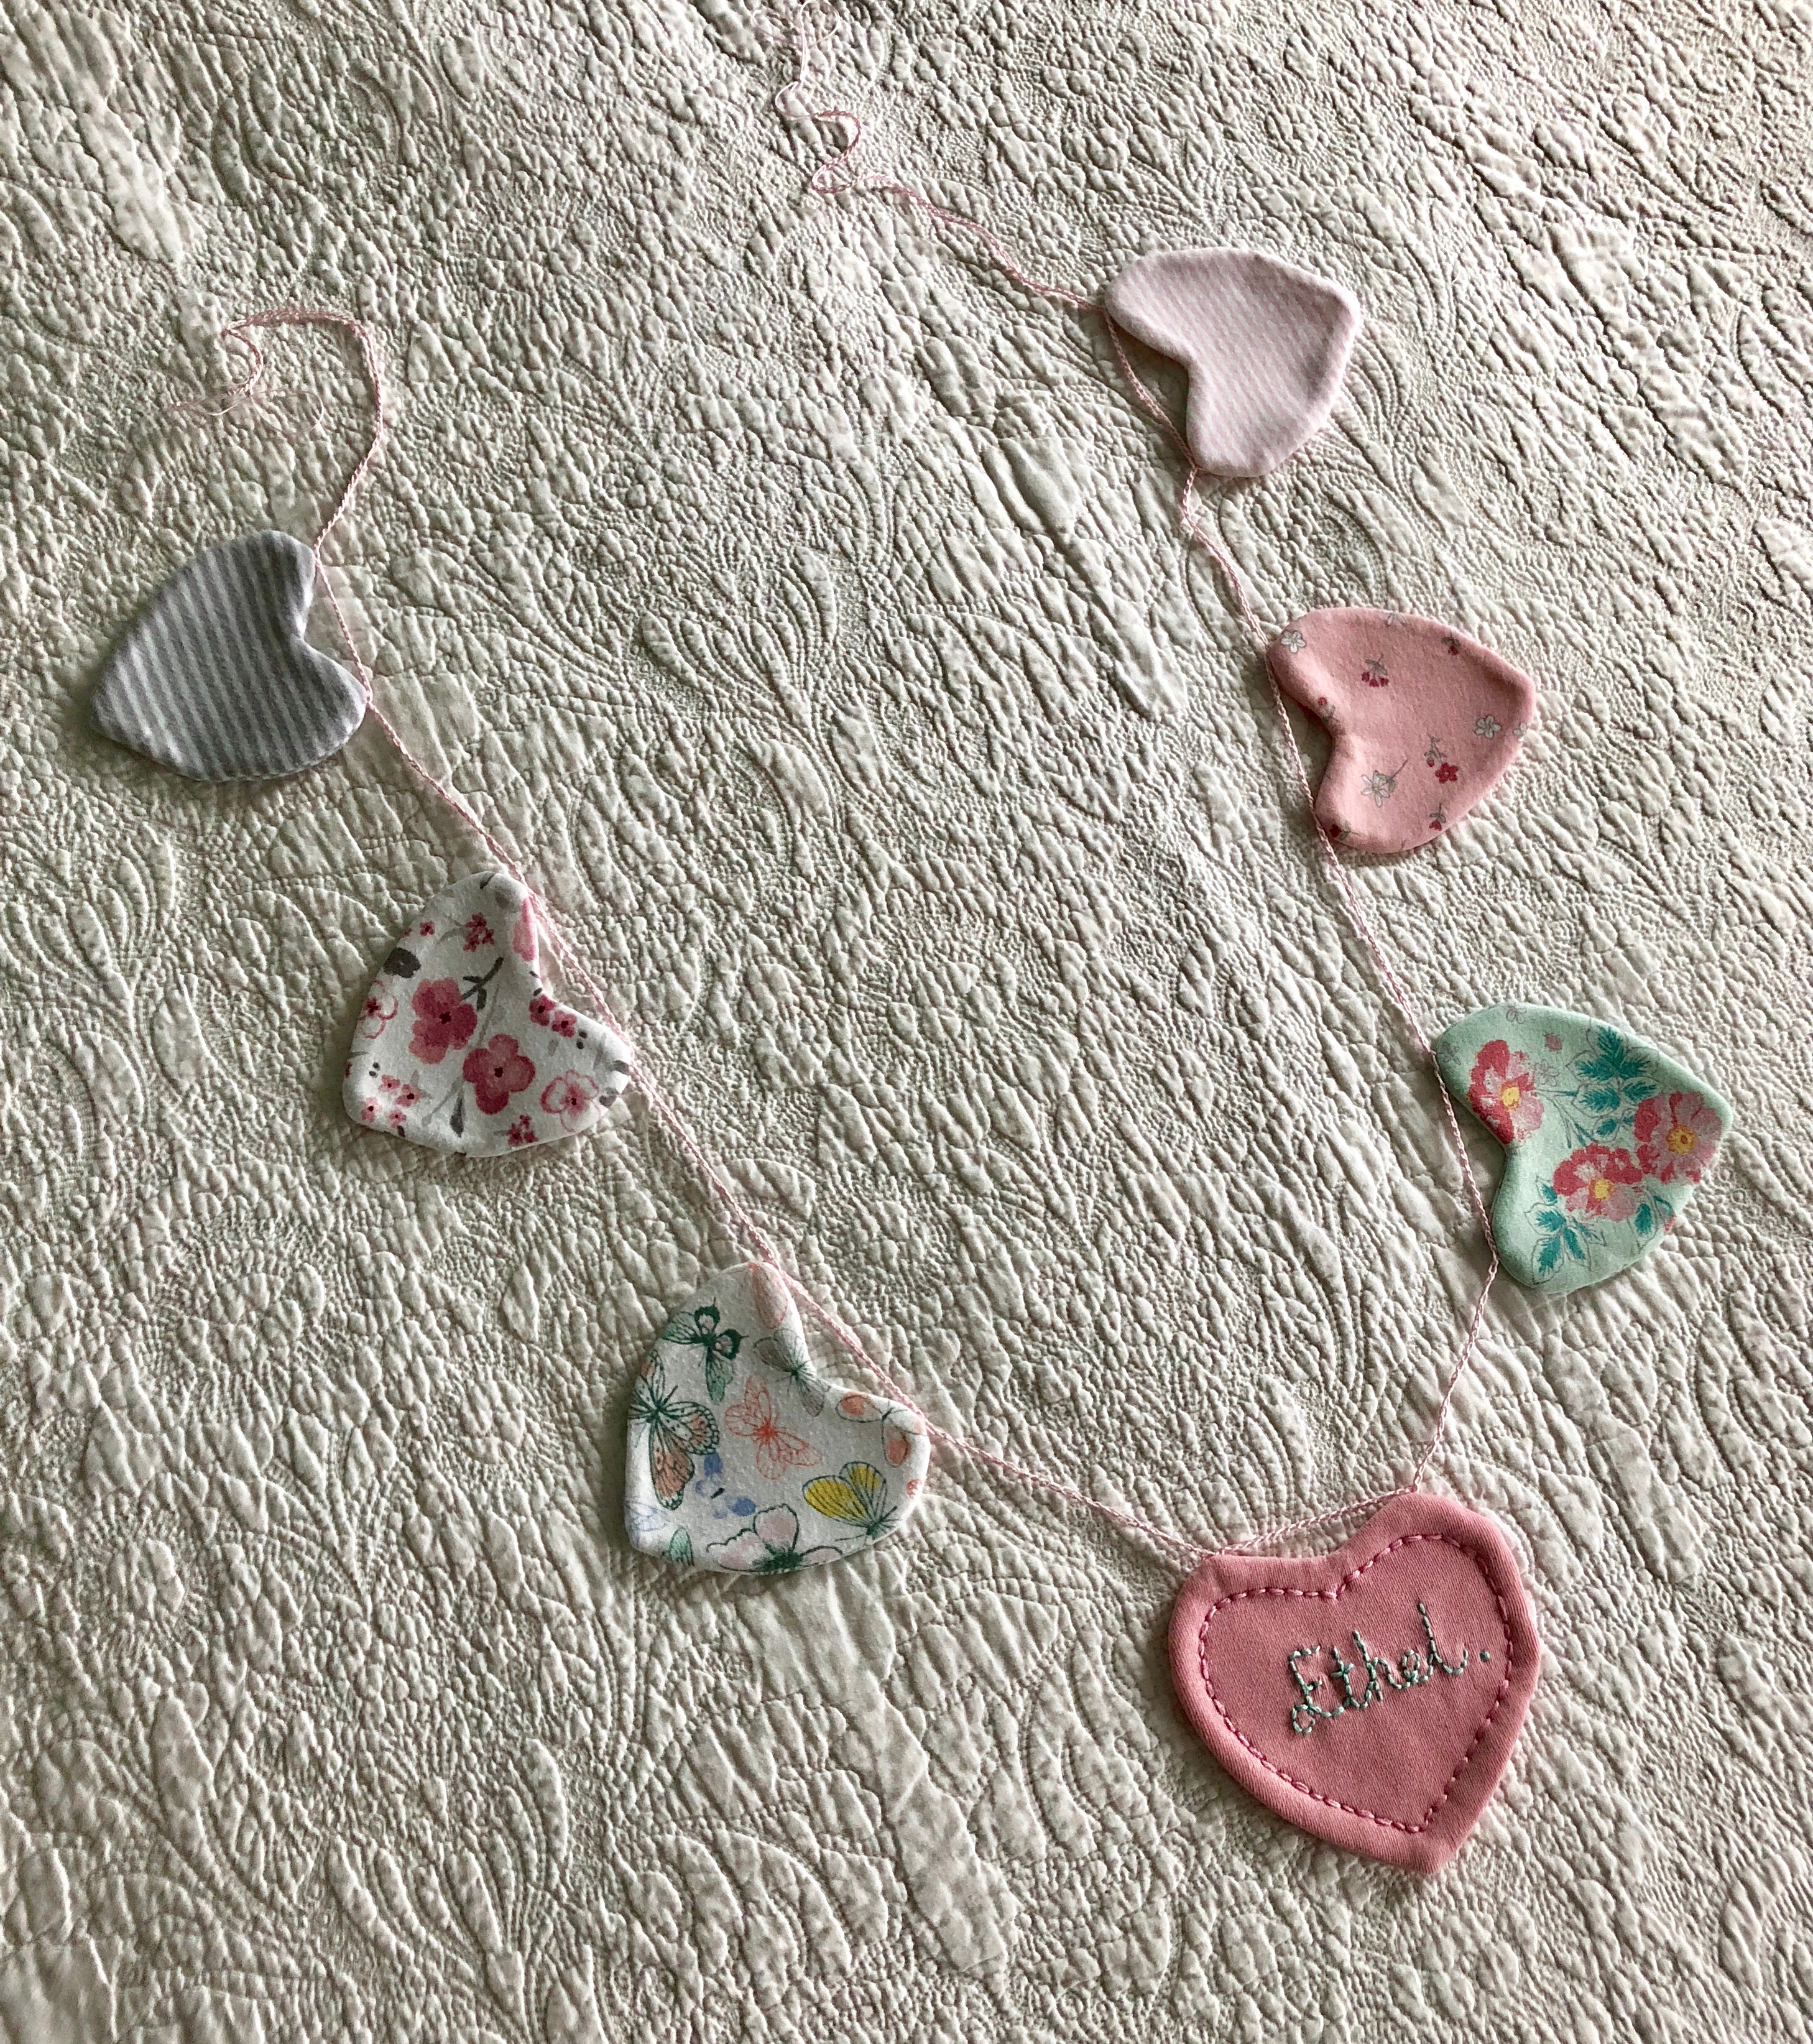 A keepsake hand embroidered heart garland made using a loved ones clothes.